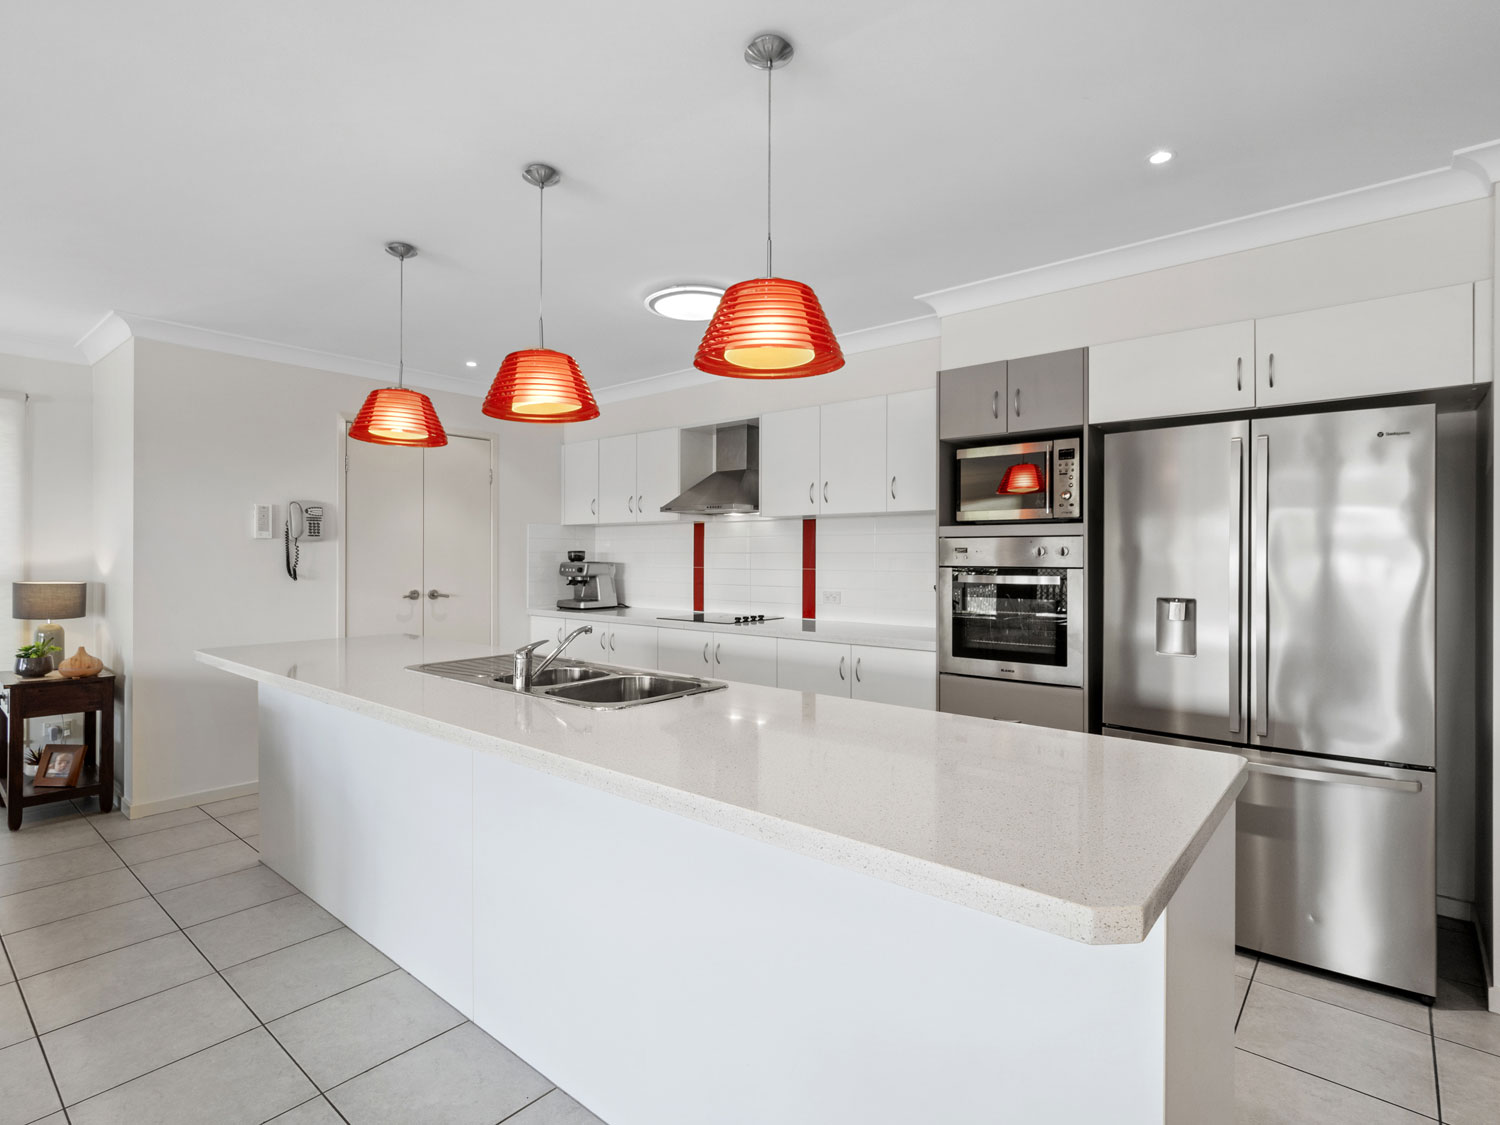 Capturing the kitchen area of the home for sale at Mitchelton